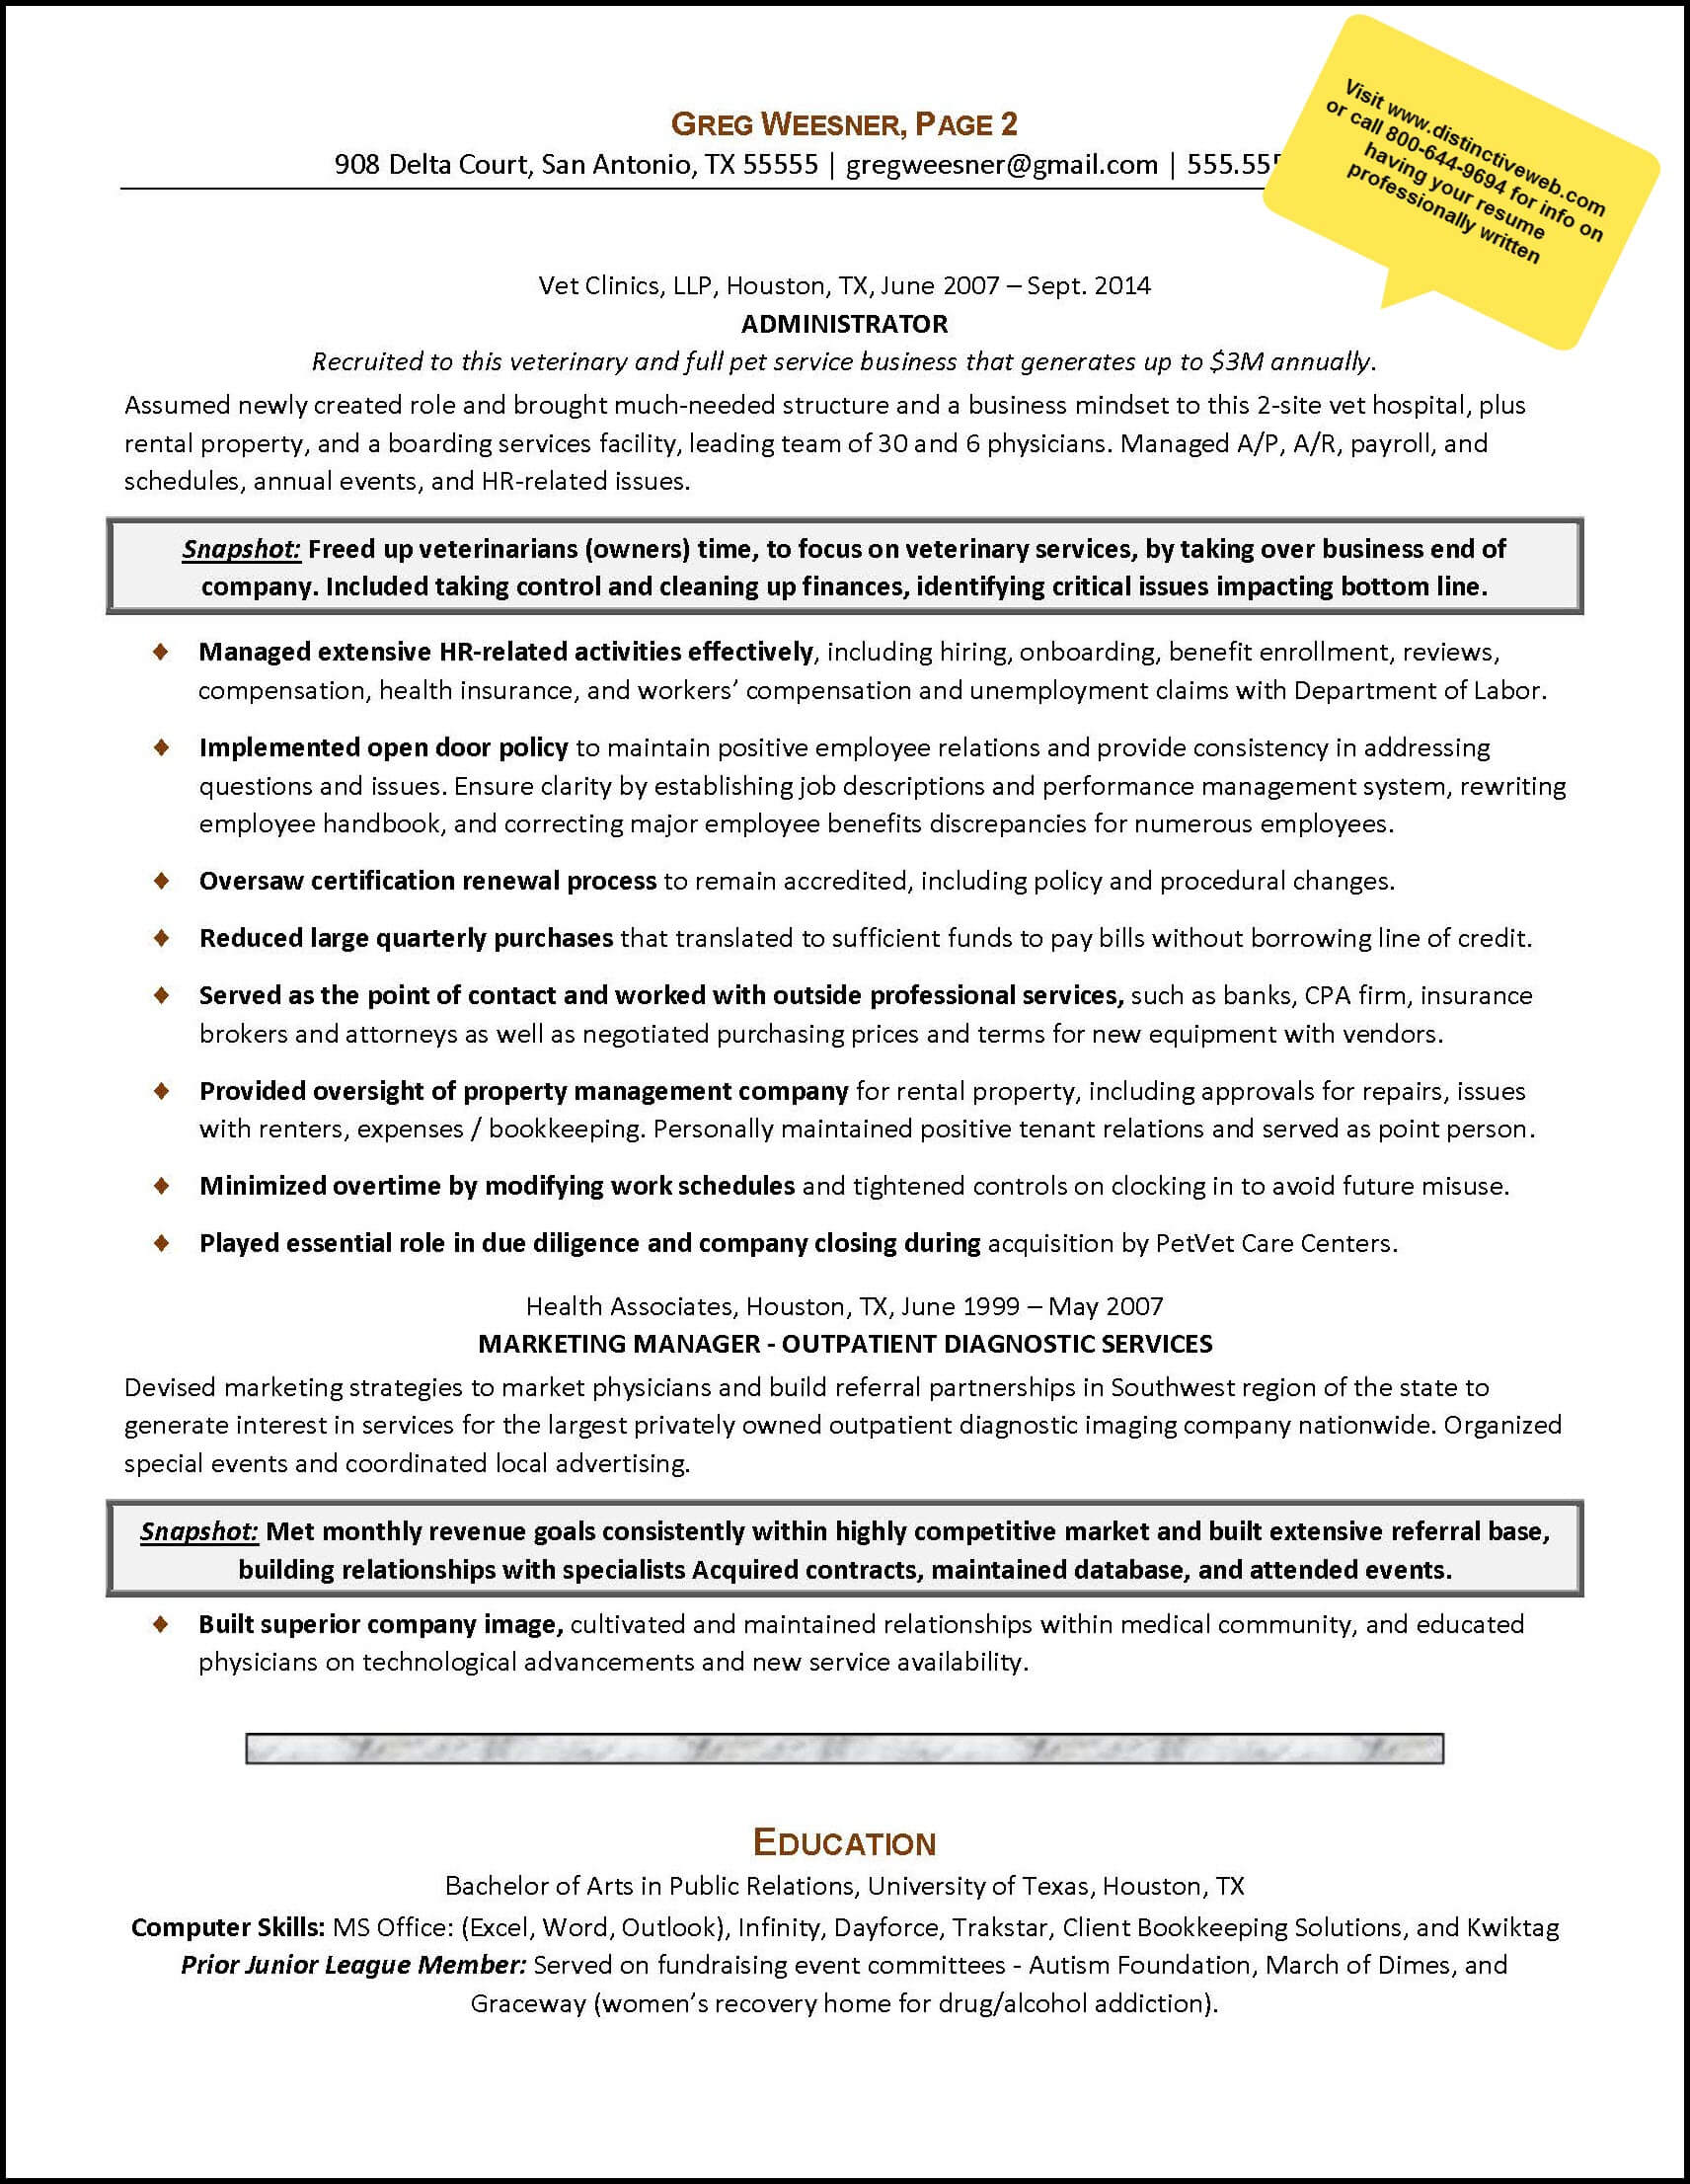 Sample career change resume for an administrative services manager - page 2